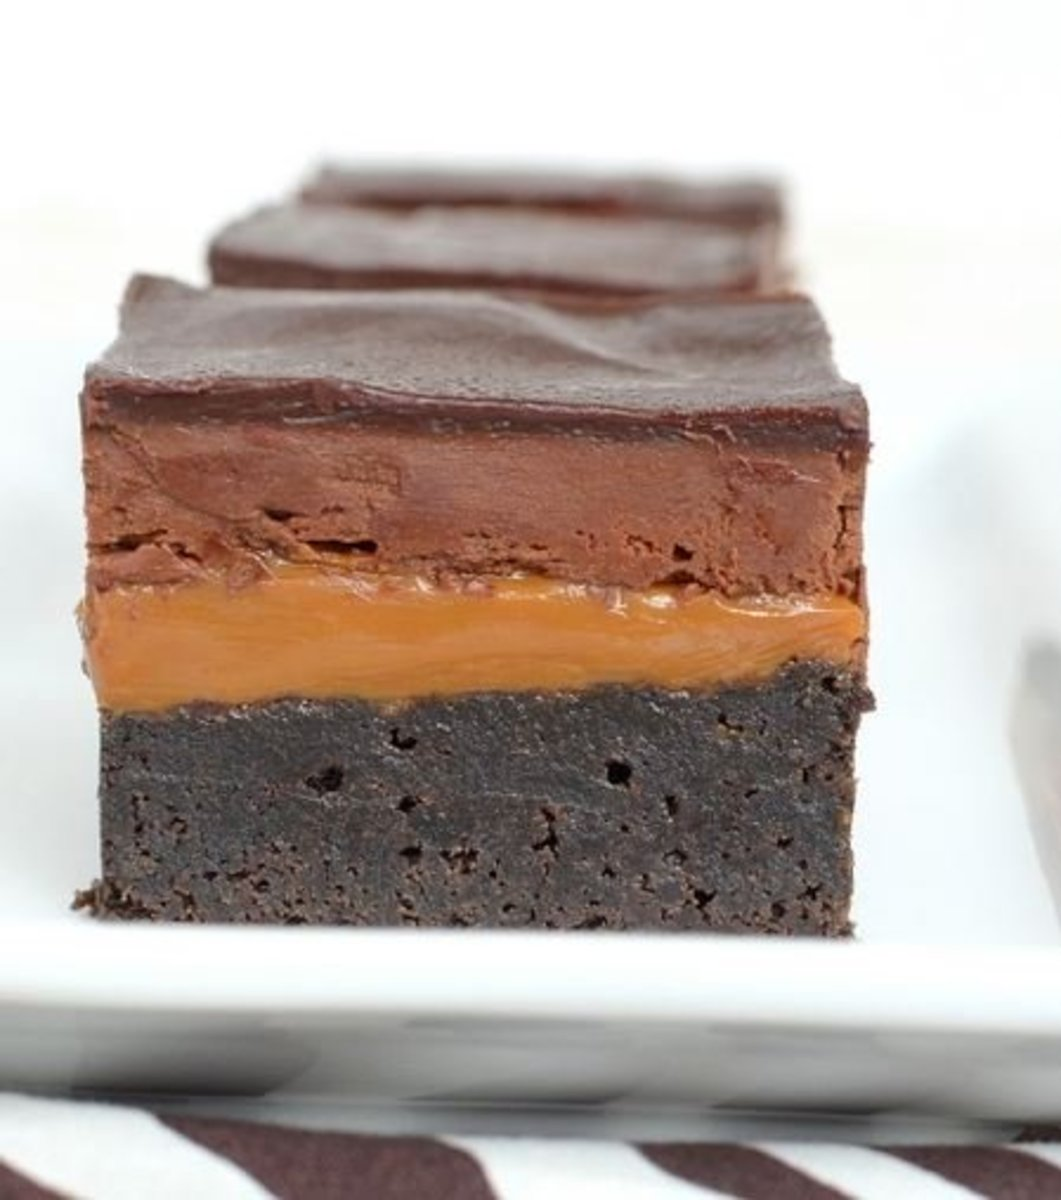 These caramel brownies have amazing layers.